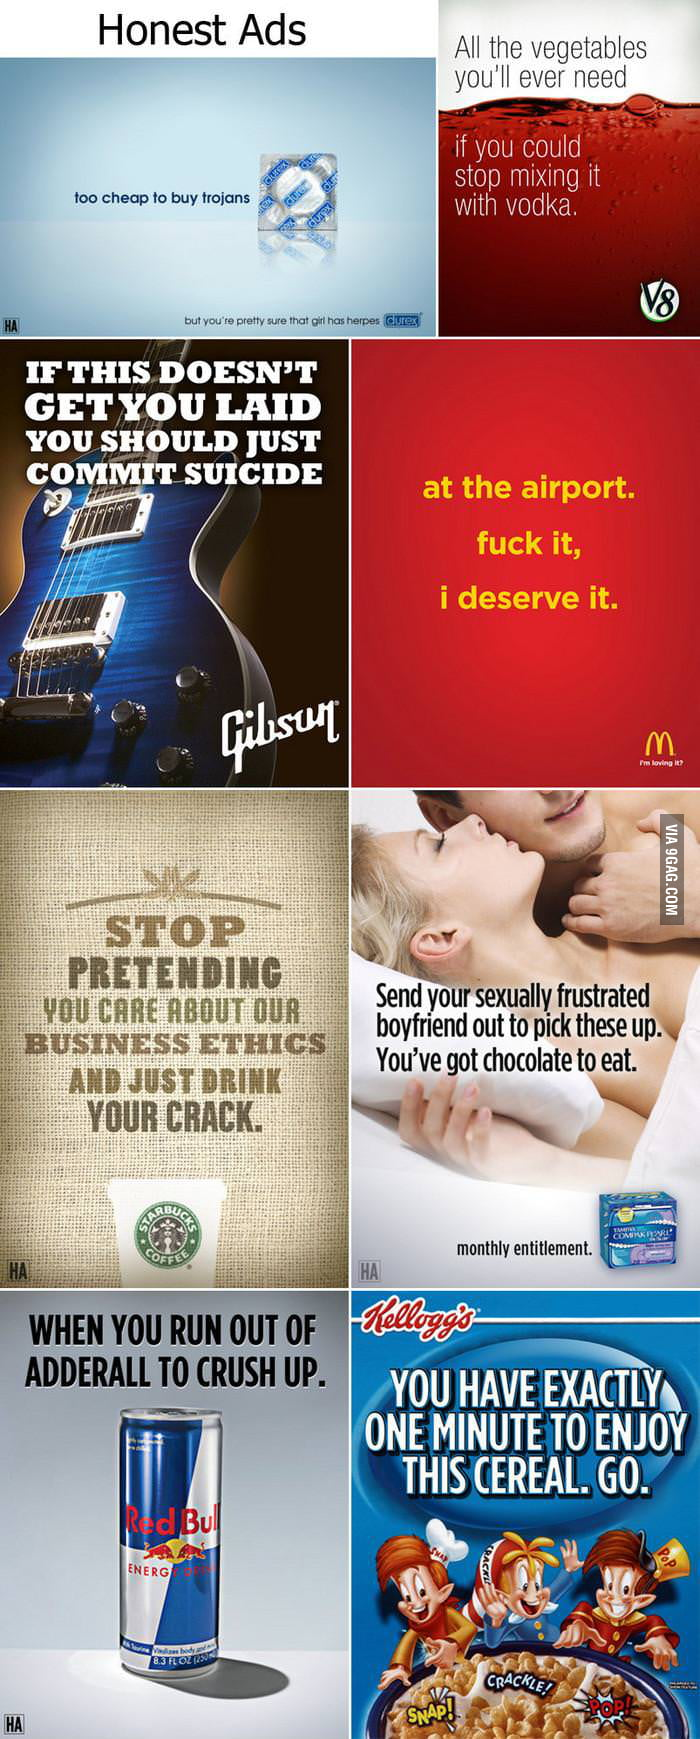 If advertisements were honest